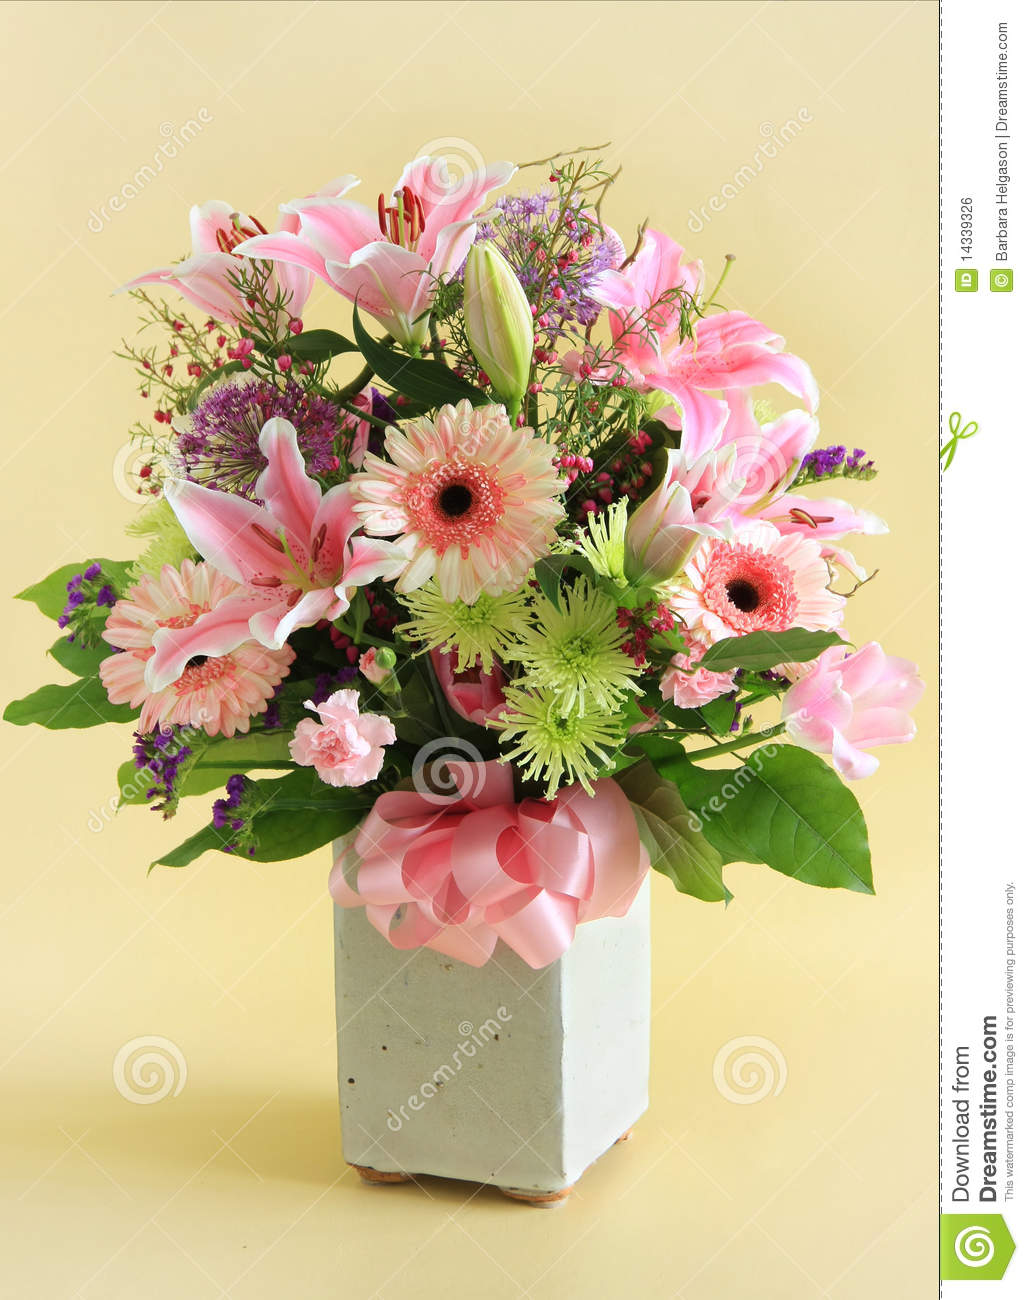 Flower Arrangement Royalty Free Stock Image - Image: 14339326